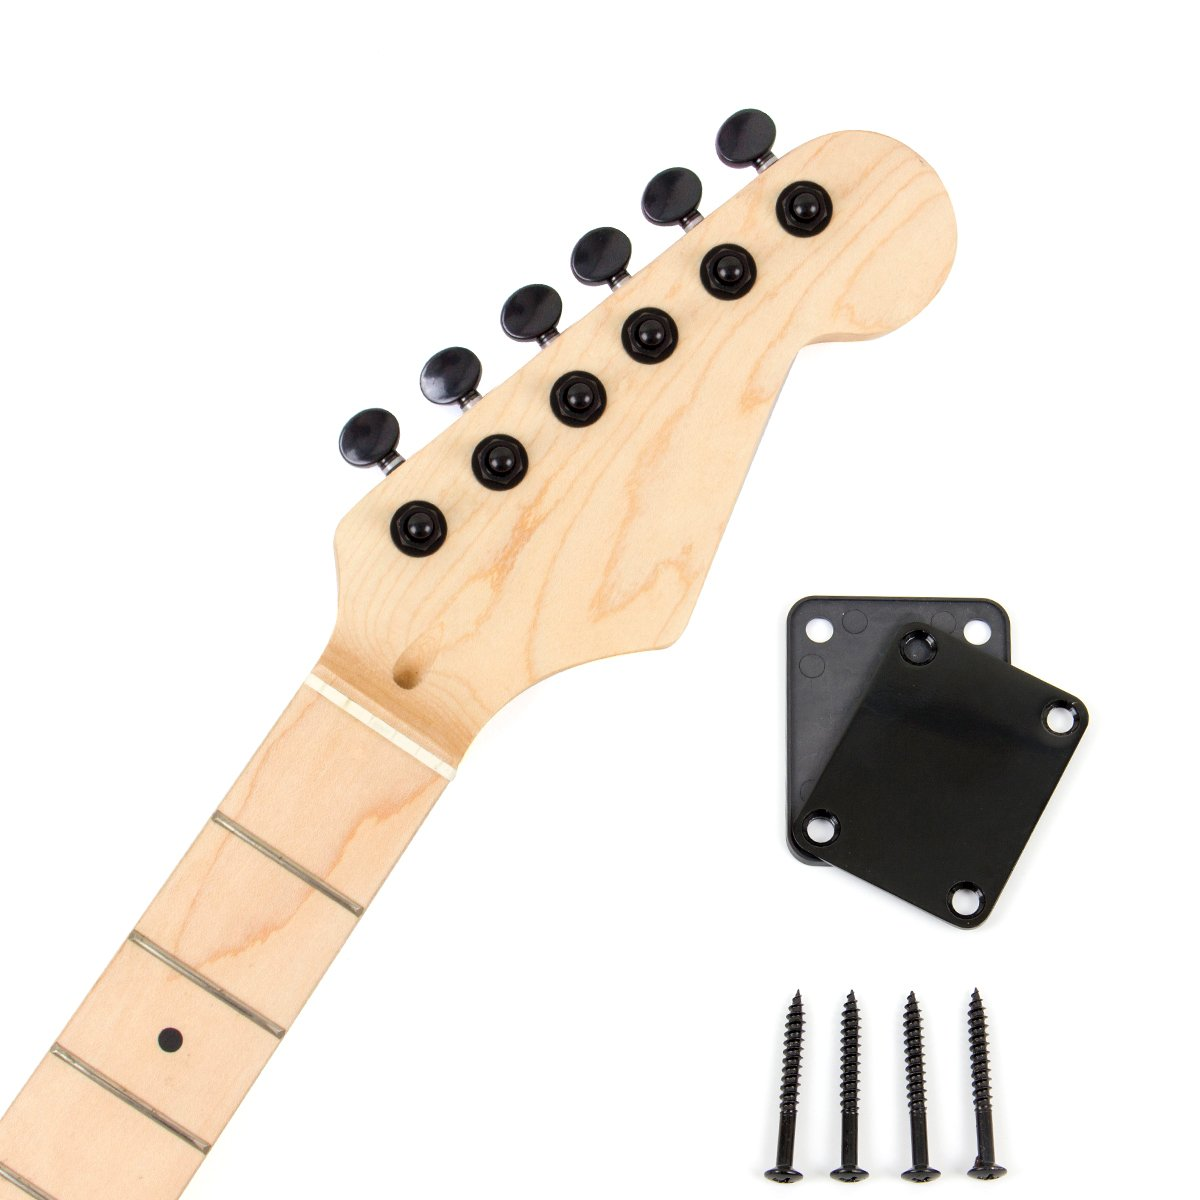 Electric Guitar Neck With Black 6R Inline Locking Tuning Pegs Neck Plate Maple Wood Neck Machine Heads Parts Replacement (MI2245) Ltd